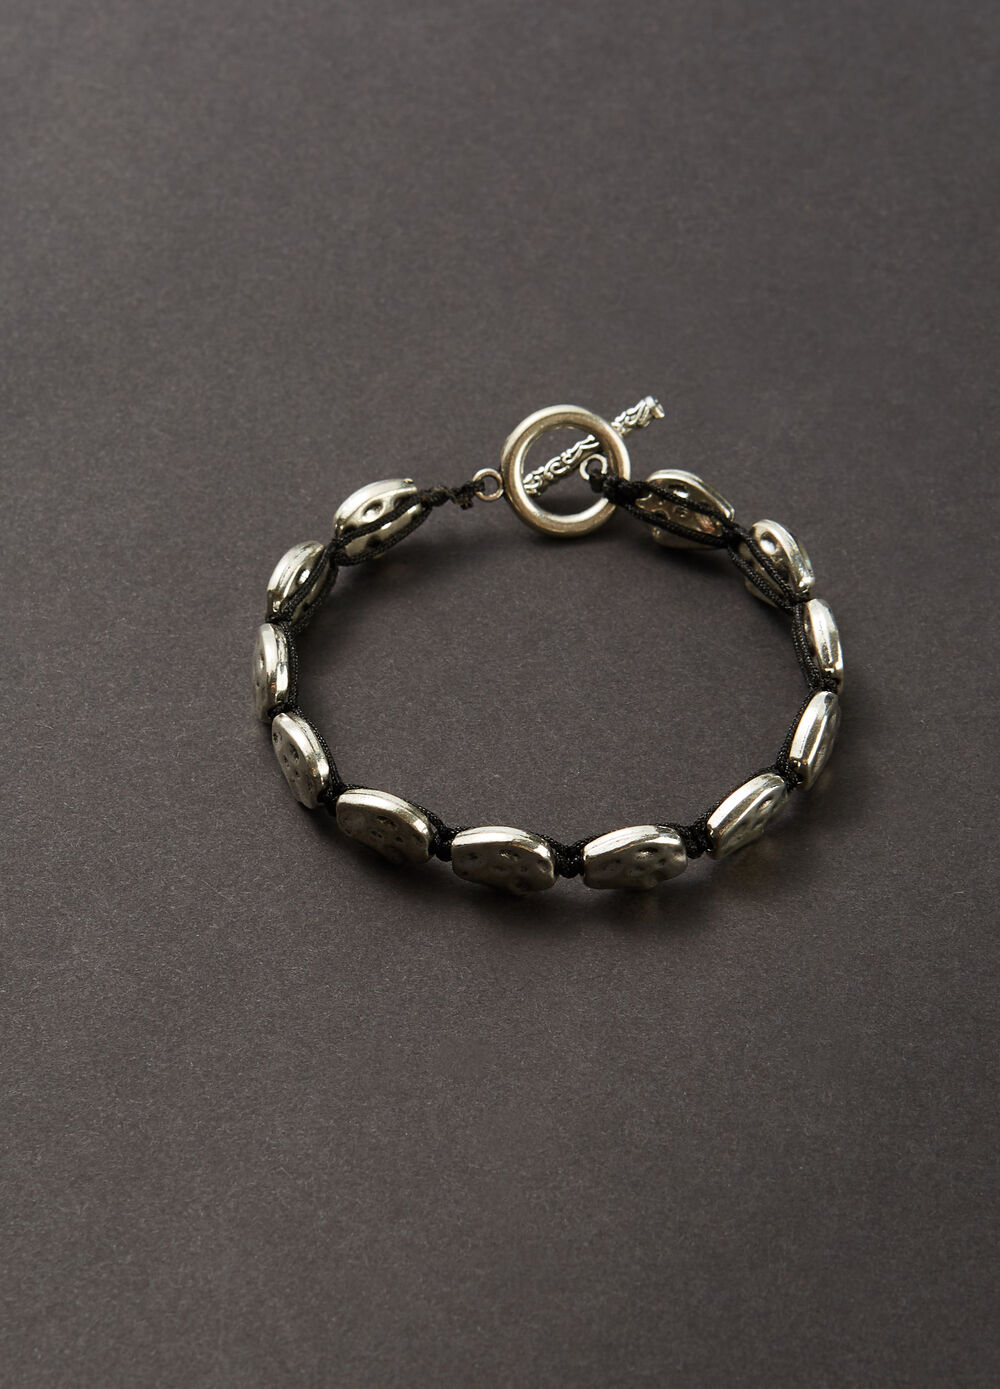 Steel bracelet with plaited wire